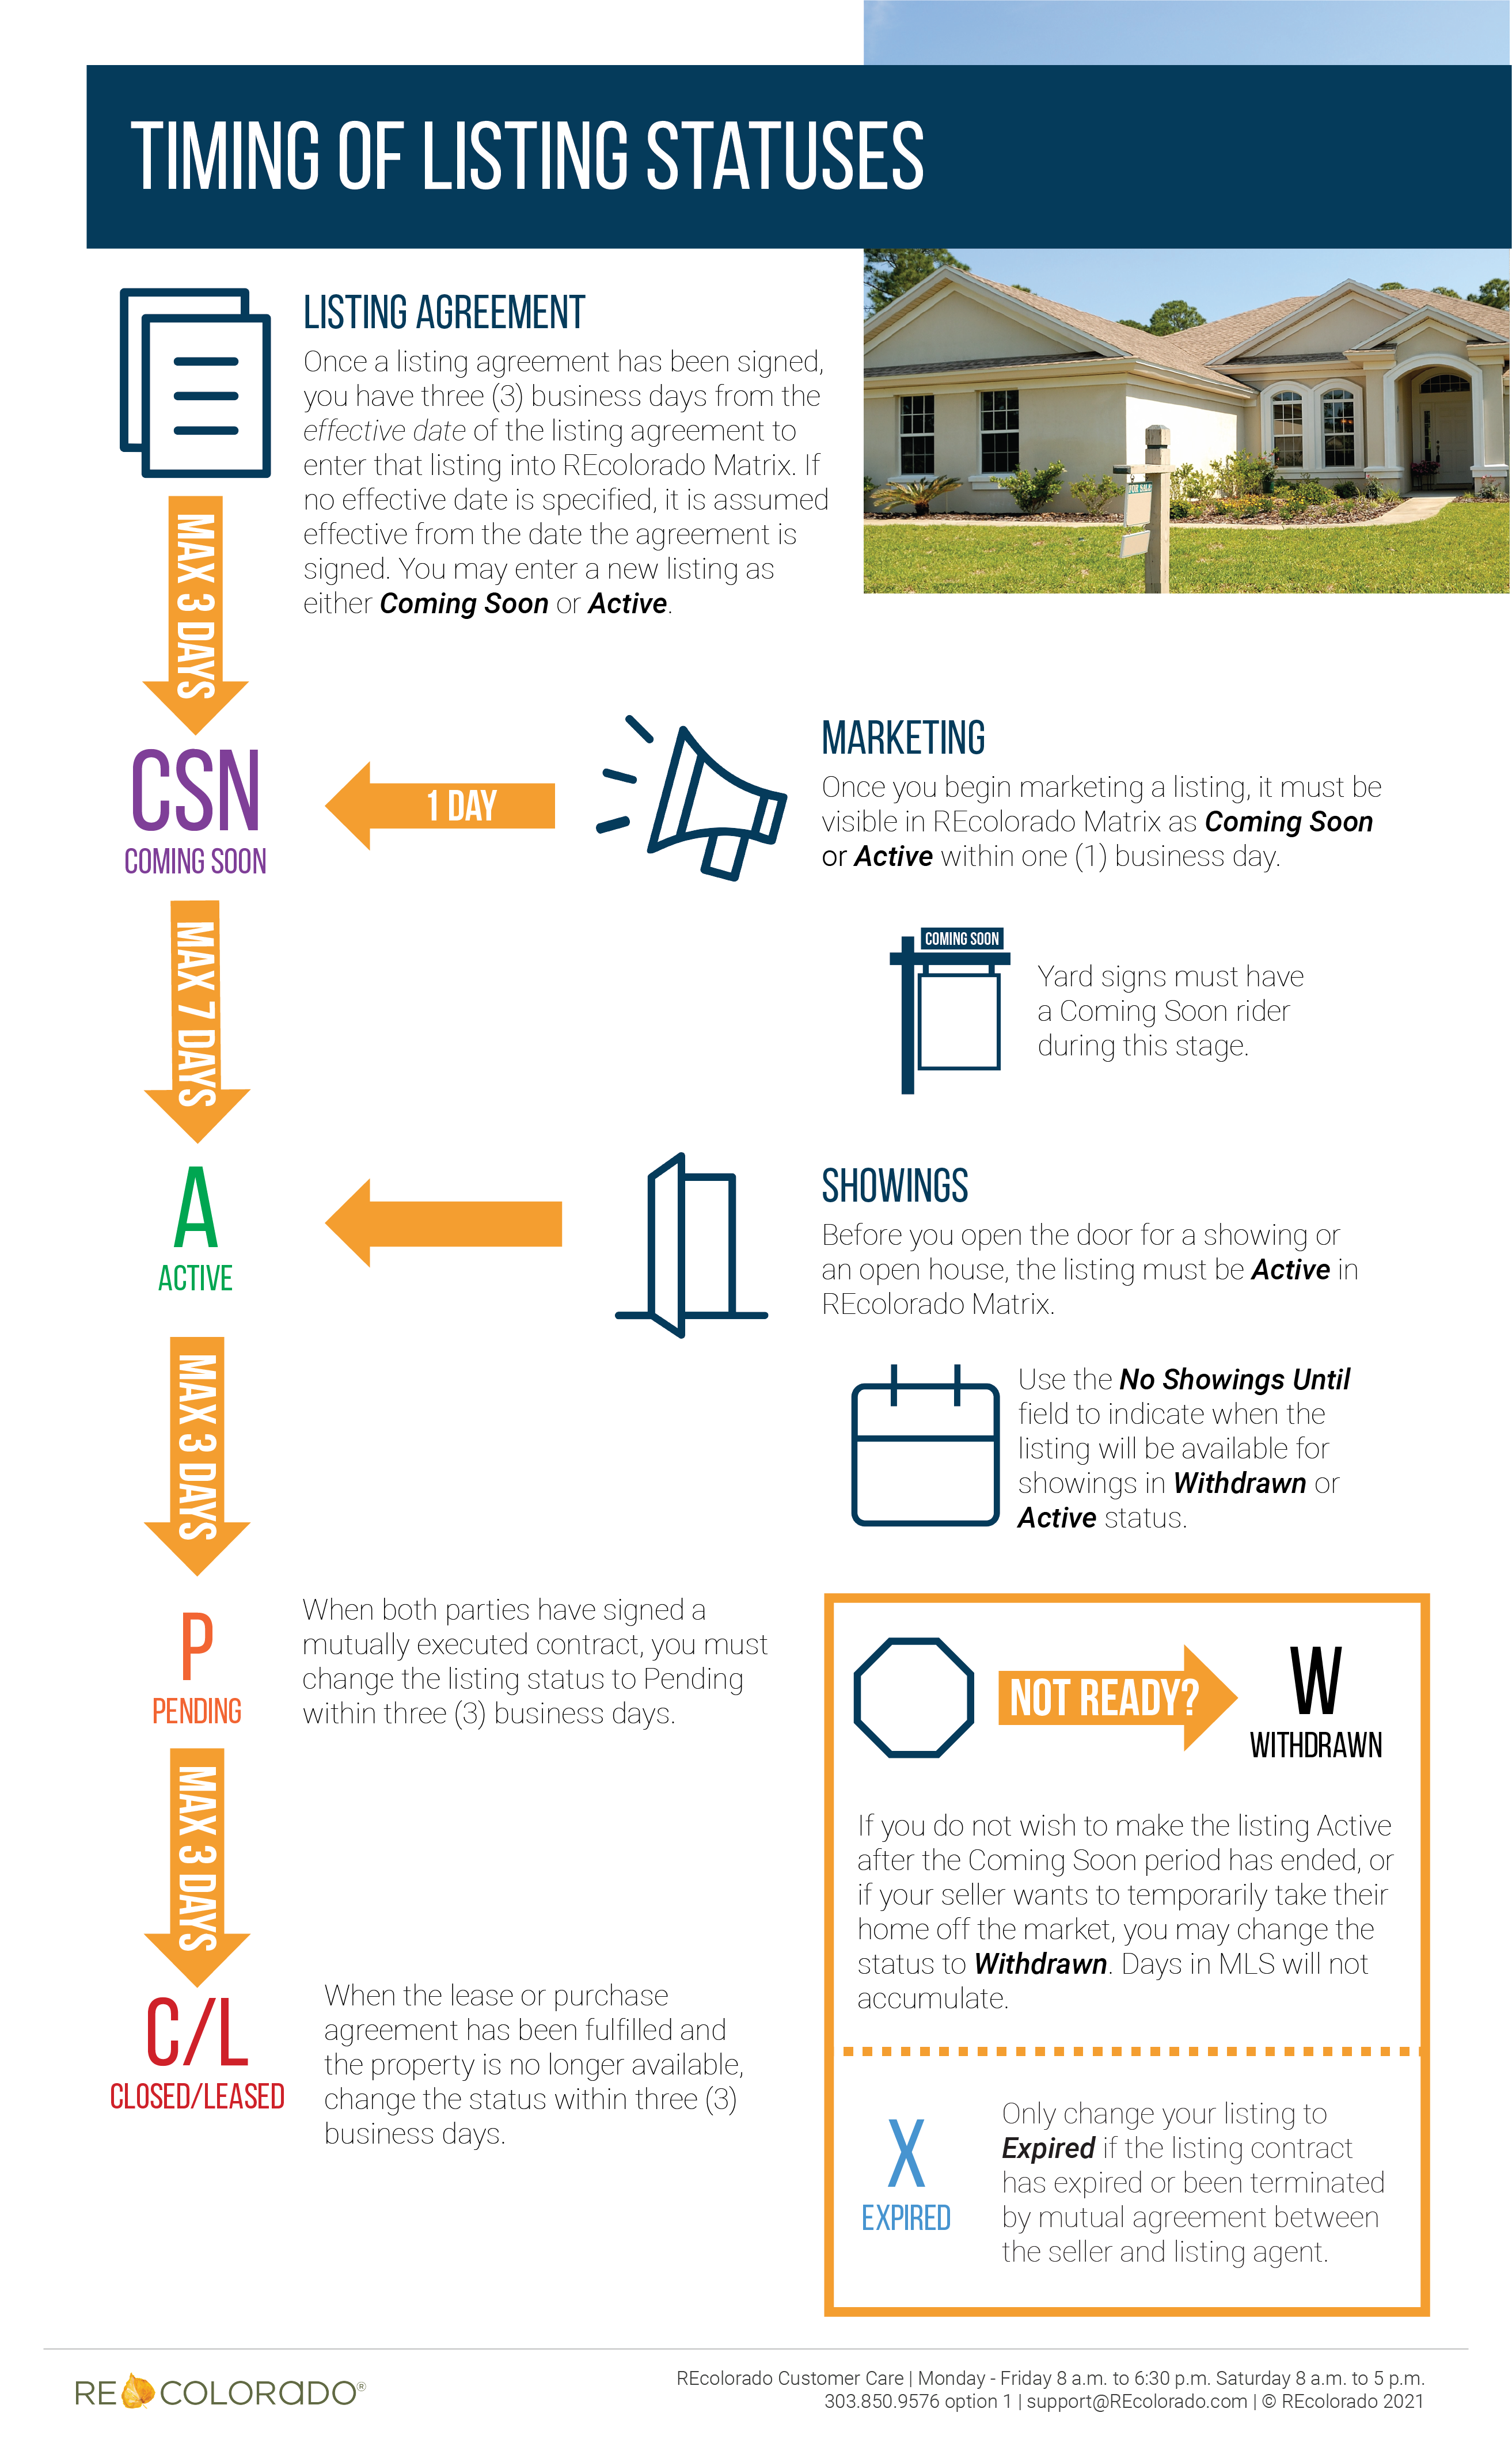 Timing of Listing Statuses infographic